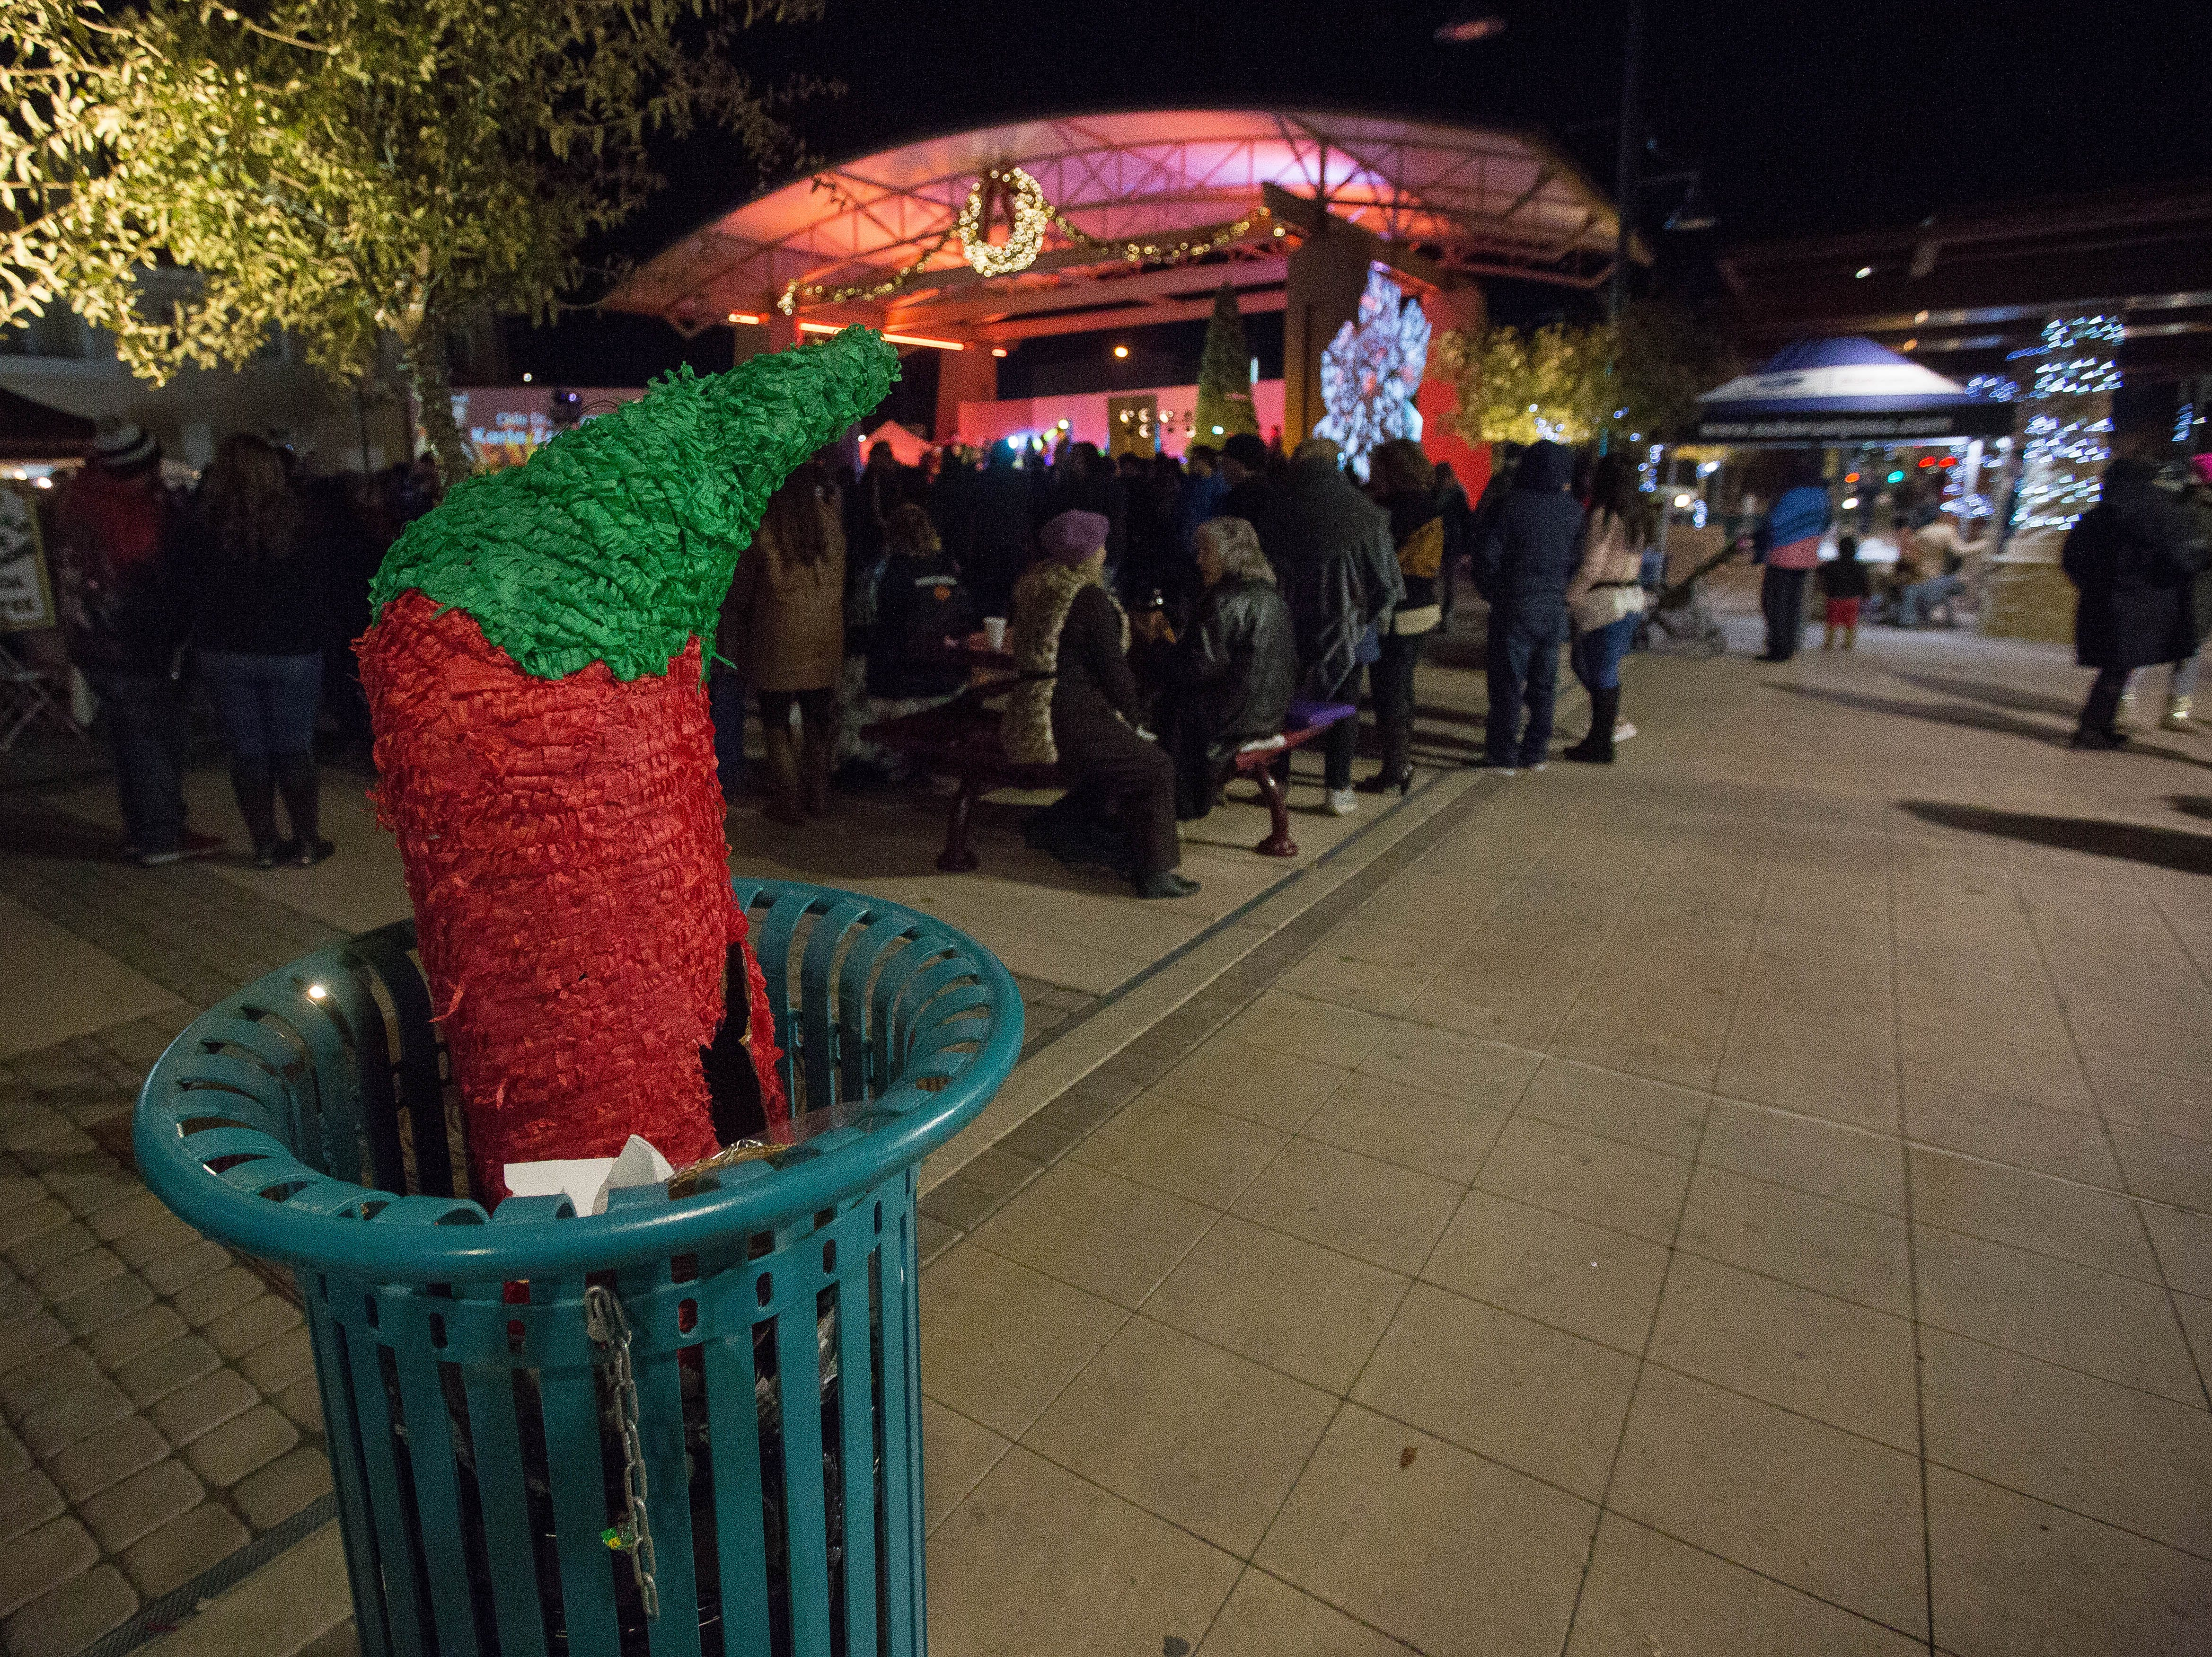 A red chile piñata in a trash can on the Plaza de Las Cruces, Monday December 31, 2018, as the Chile Drop festivities start up.